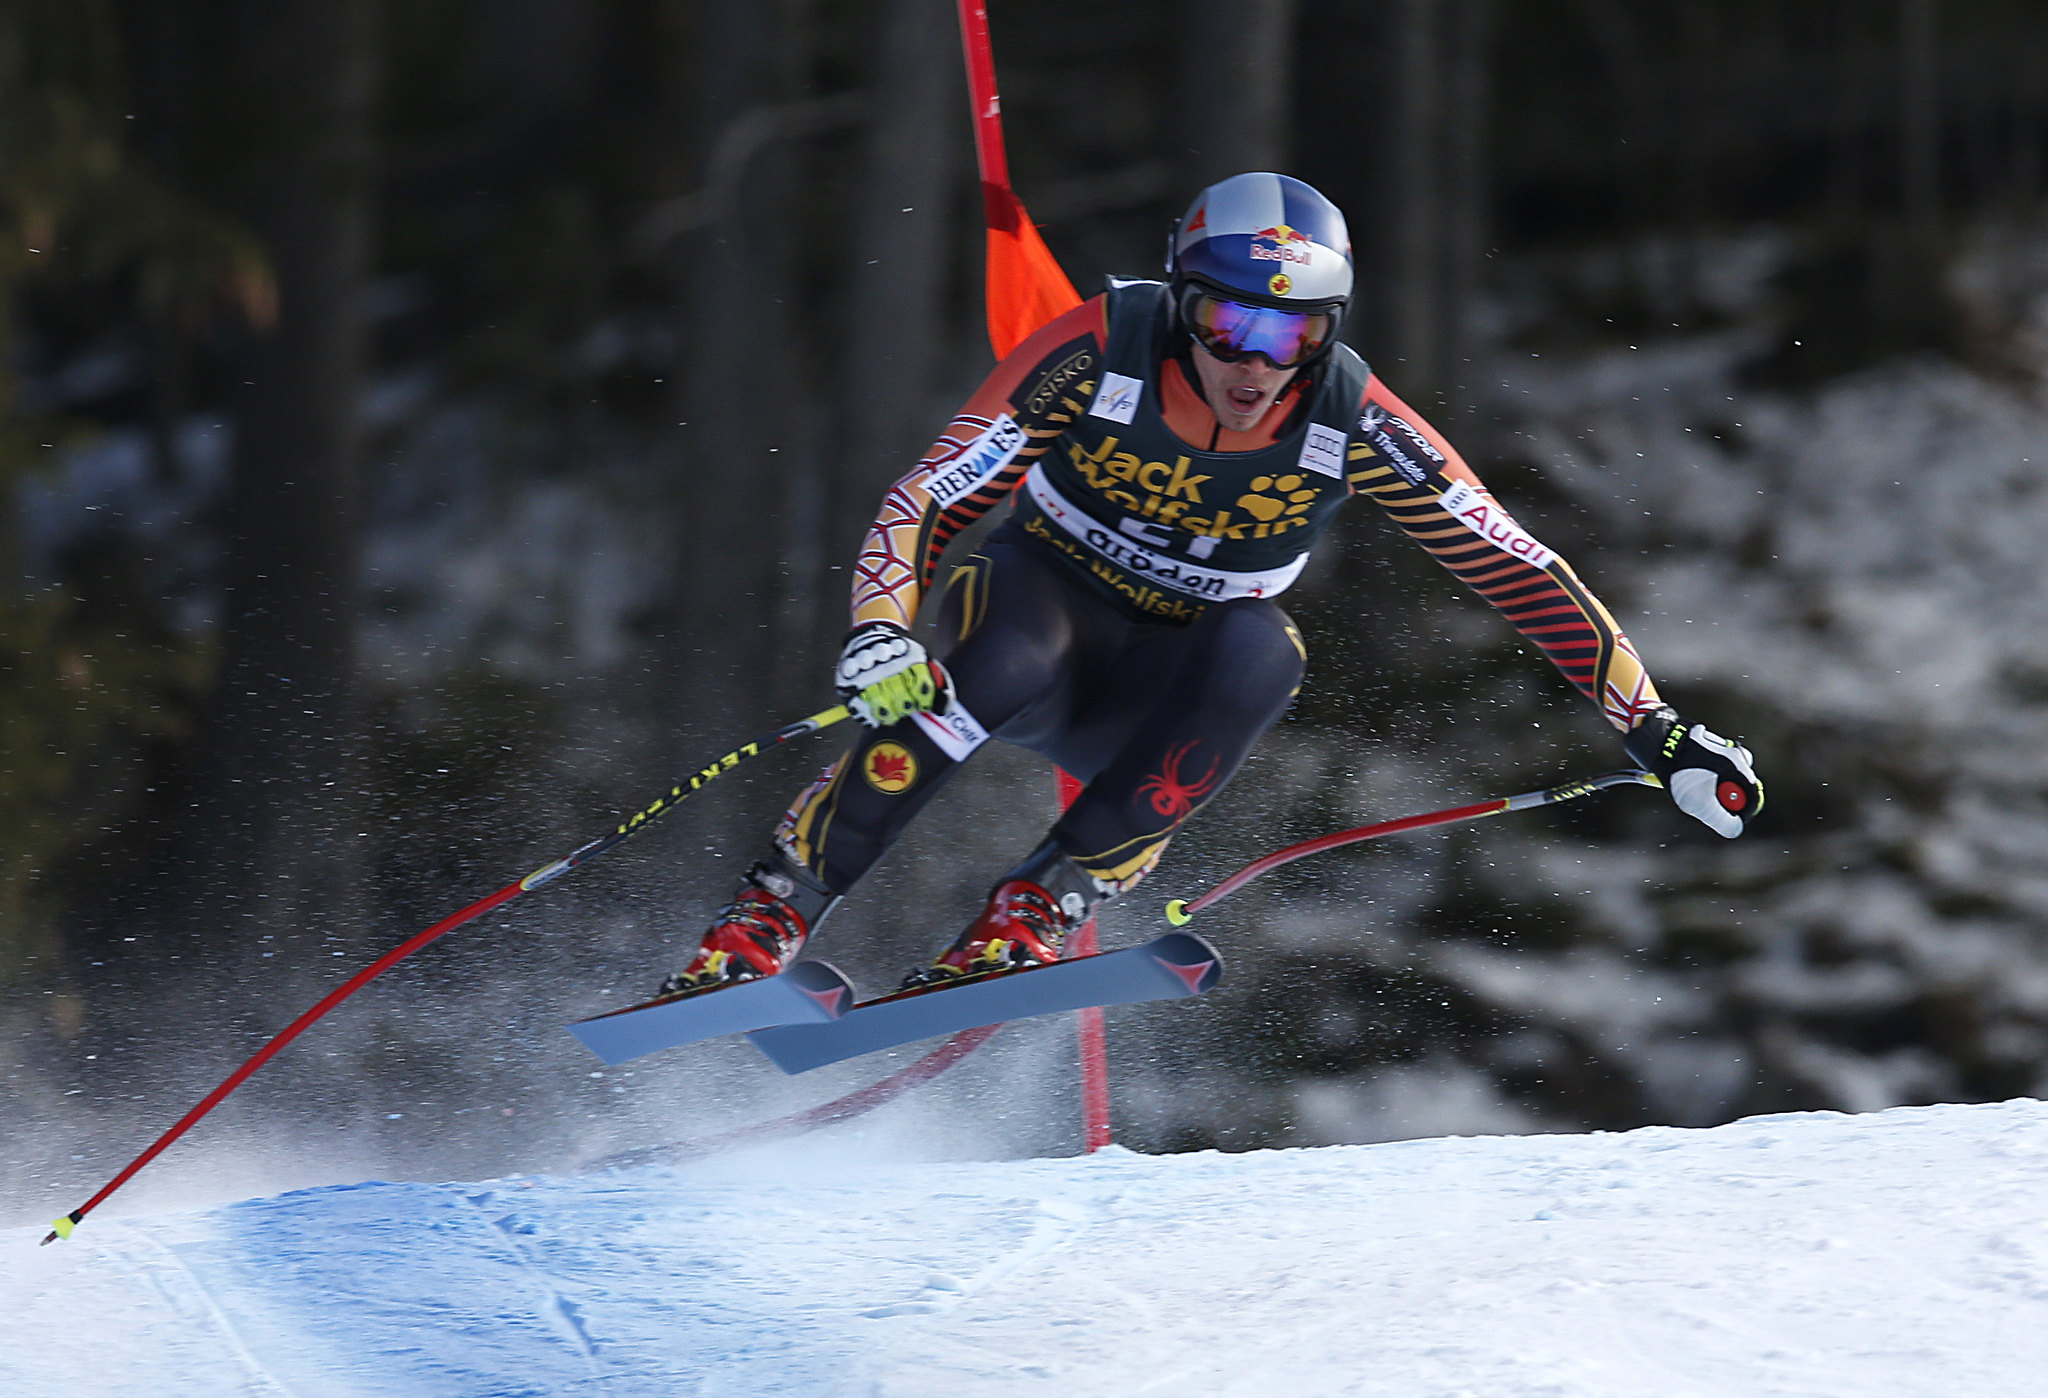 Erik Guay is the fastest man on the track during the downhill in ValGardena, ITA